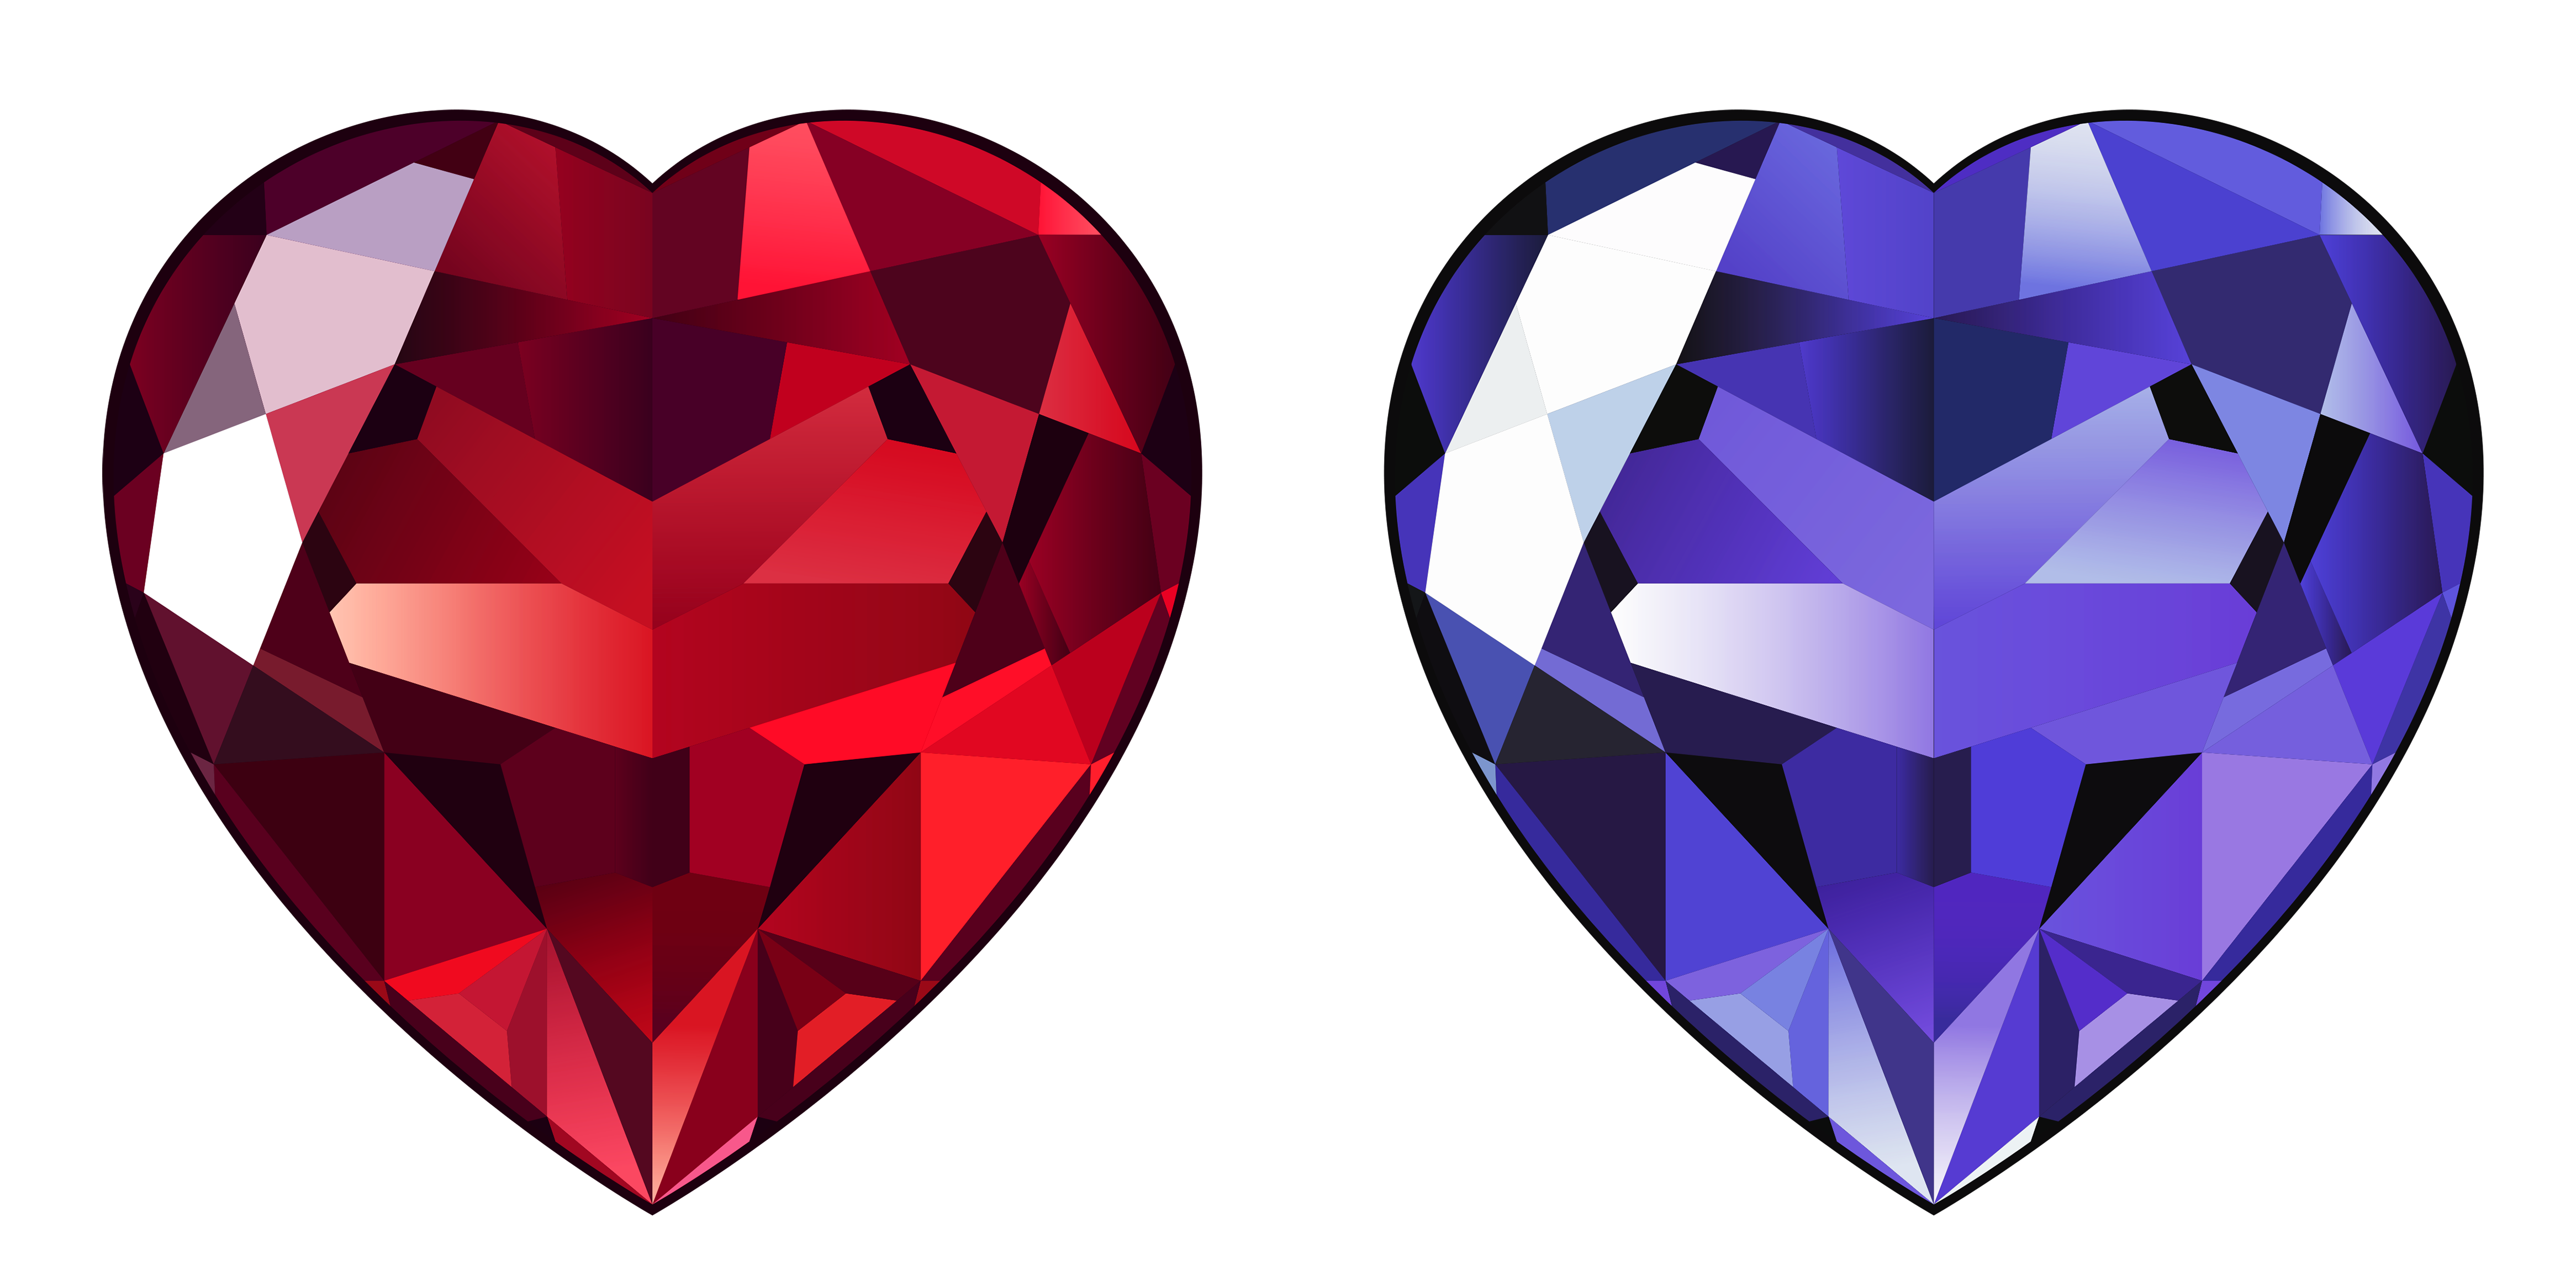 Diamond clipart png. Transparent hearts gallery yopriceville